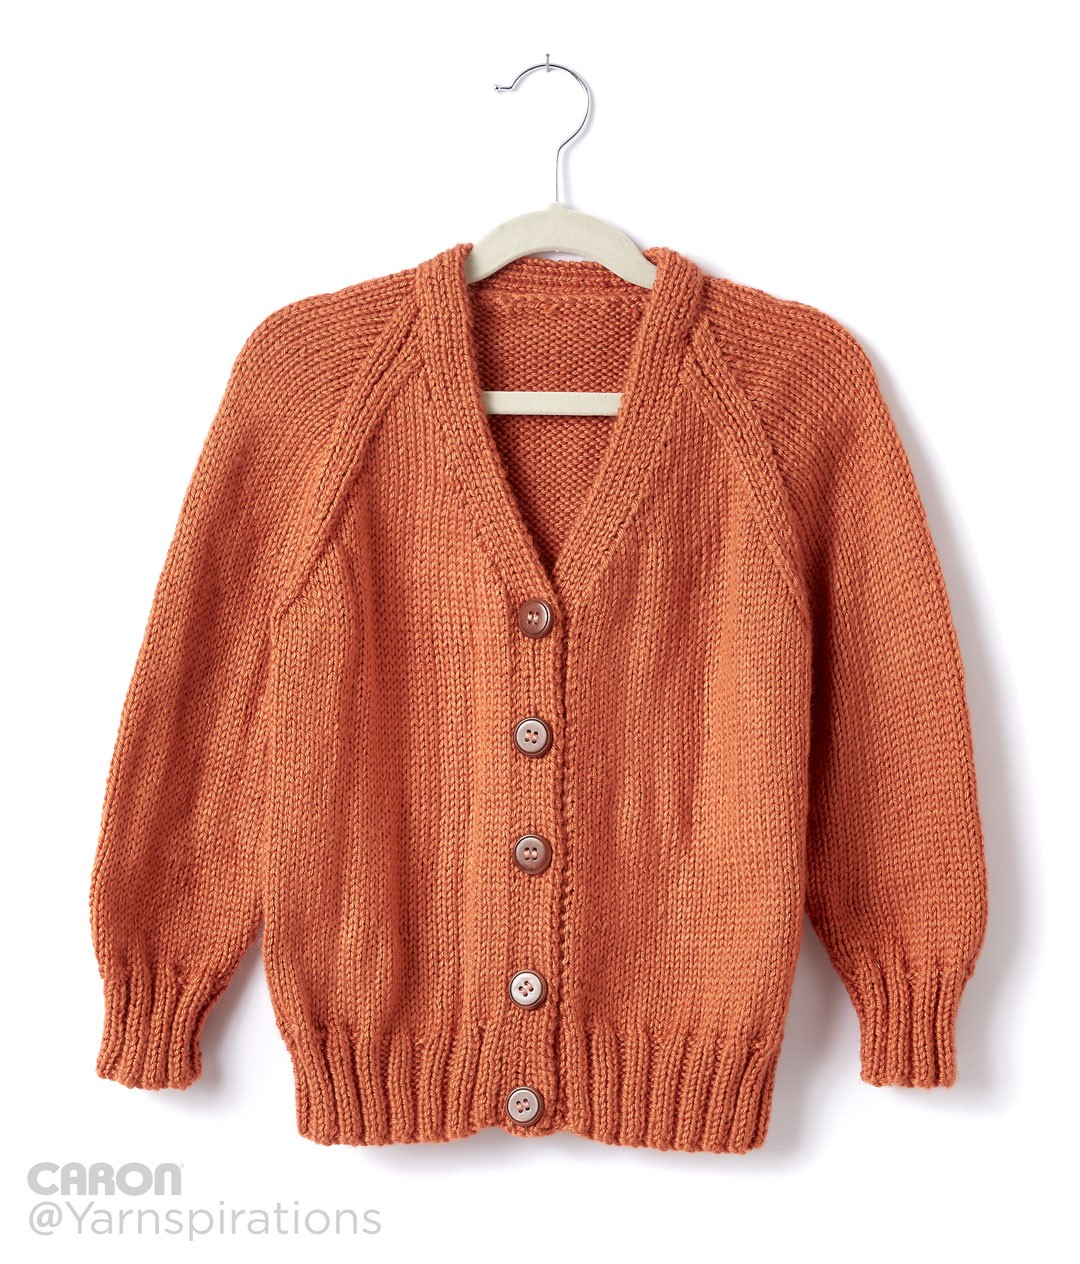 Caron Childs Knit V-Neck Cardigan, Knit Pattern Yarnspirations